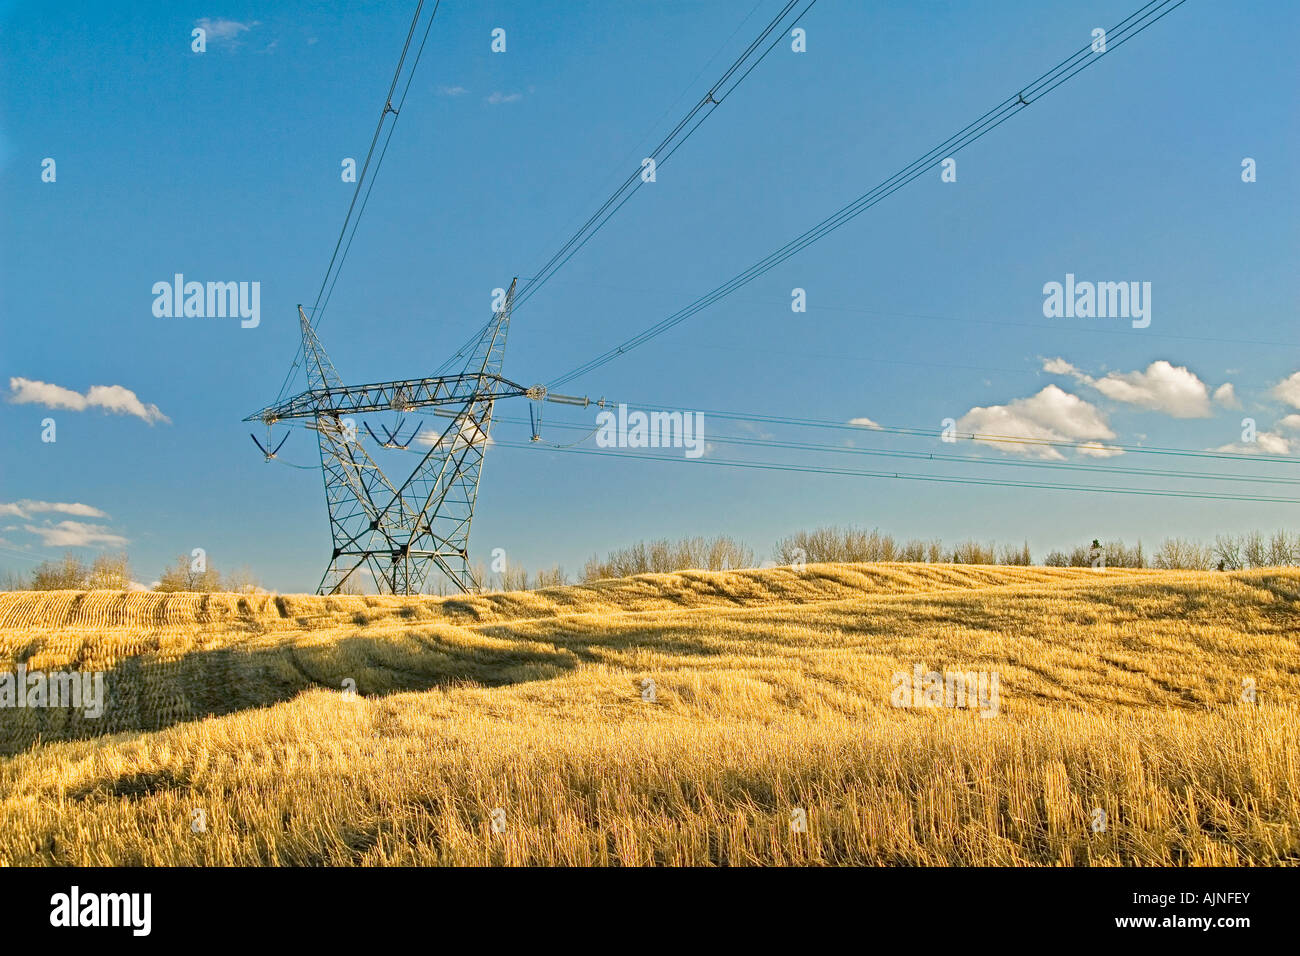 High tension tower in a field, Alberta, Canada - Stock Image